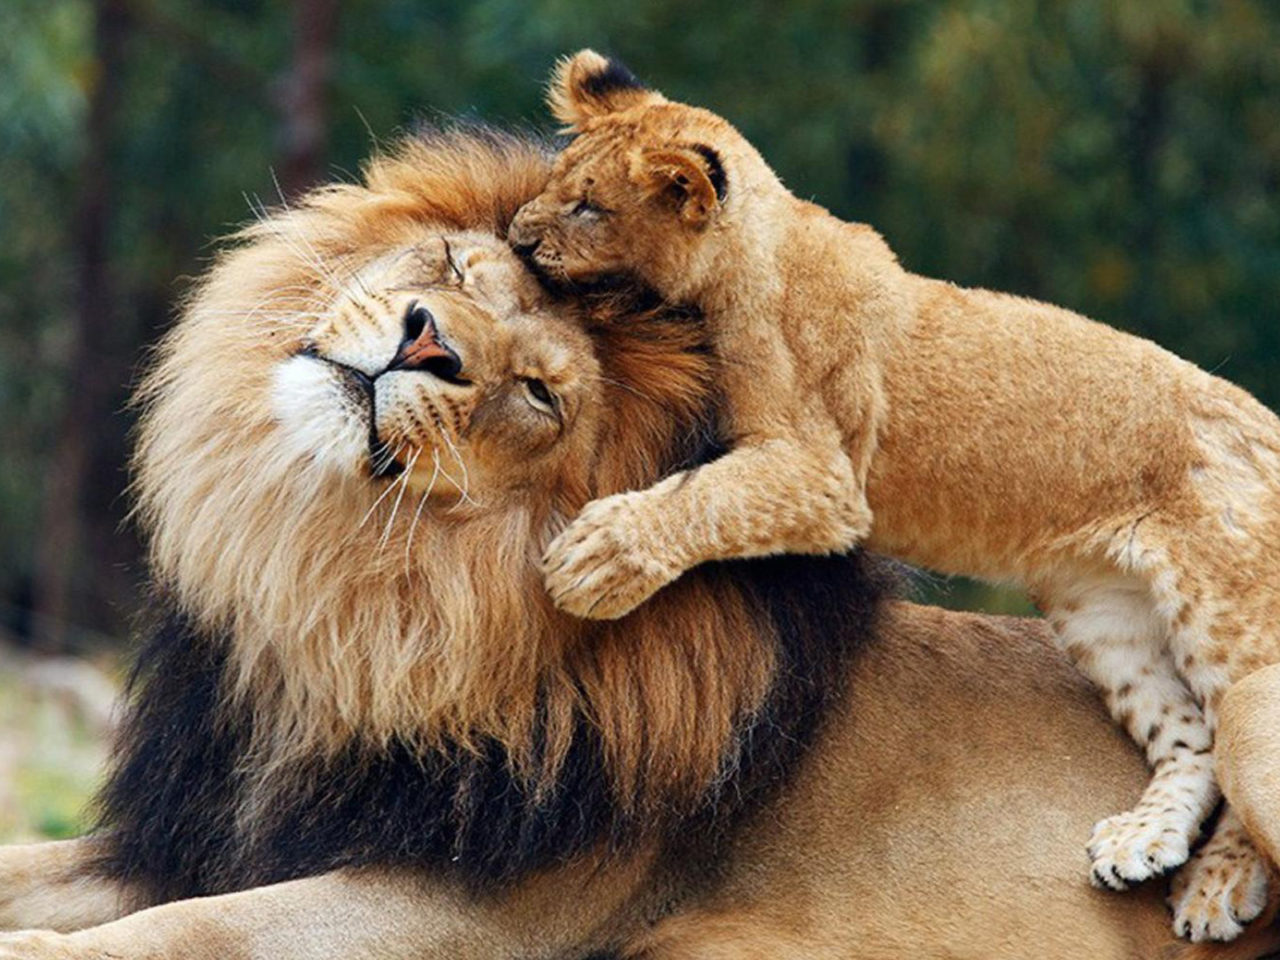 Red Wallpaper Hd Download Lions Game Between Parent And Cub Lion Wallpaper Hd